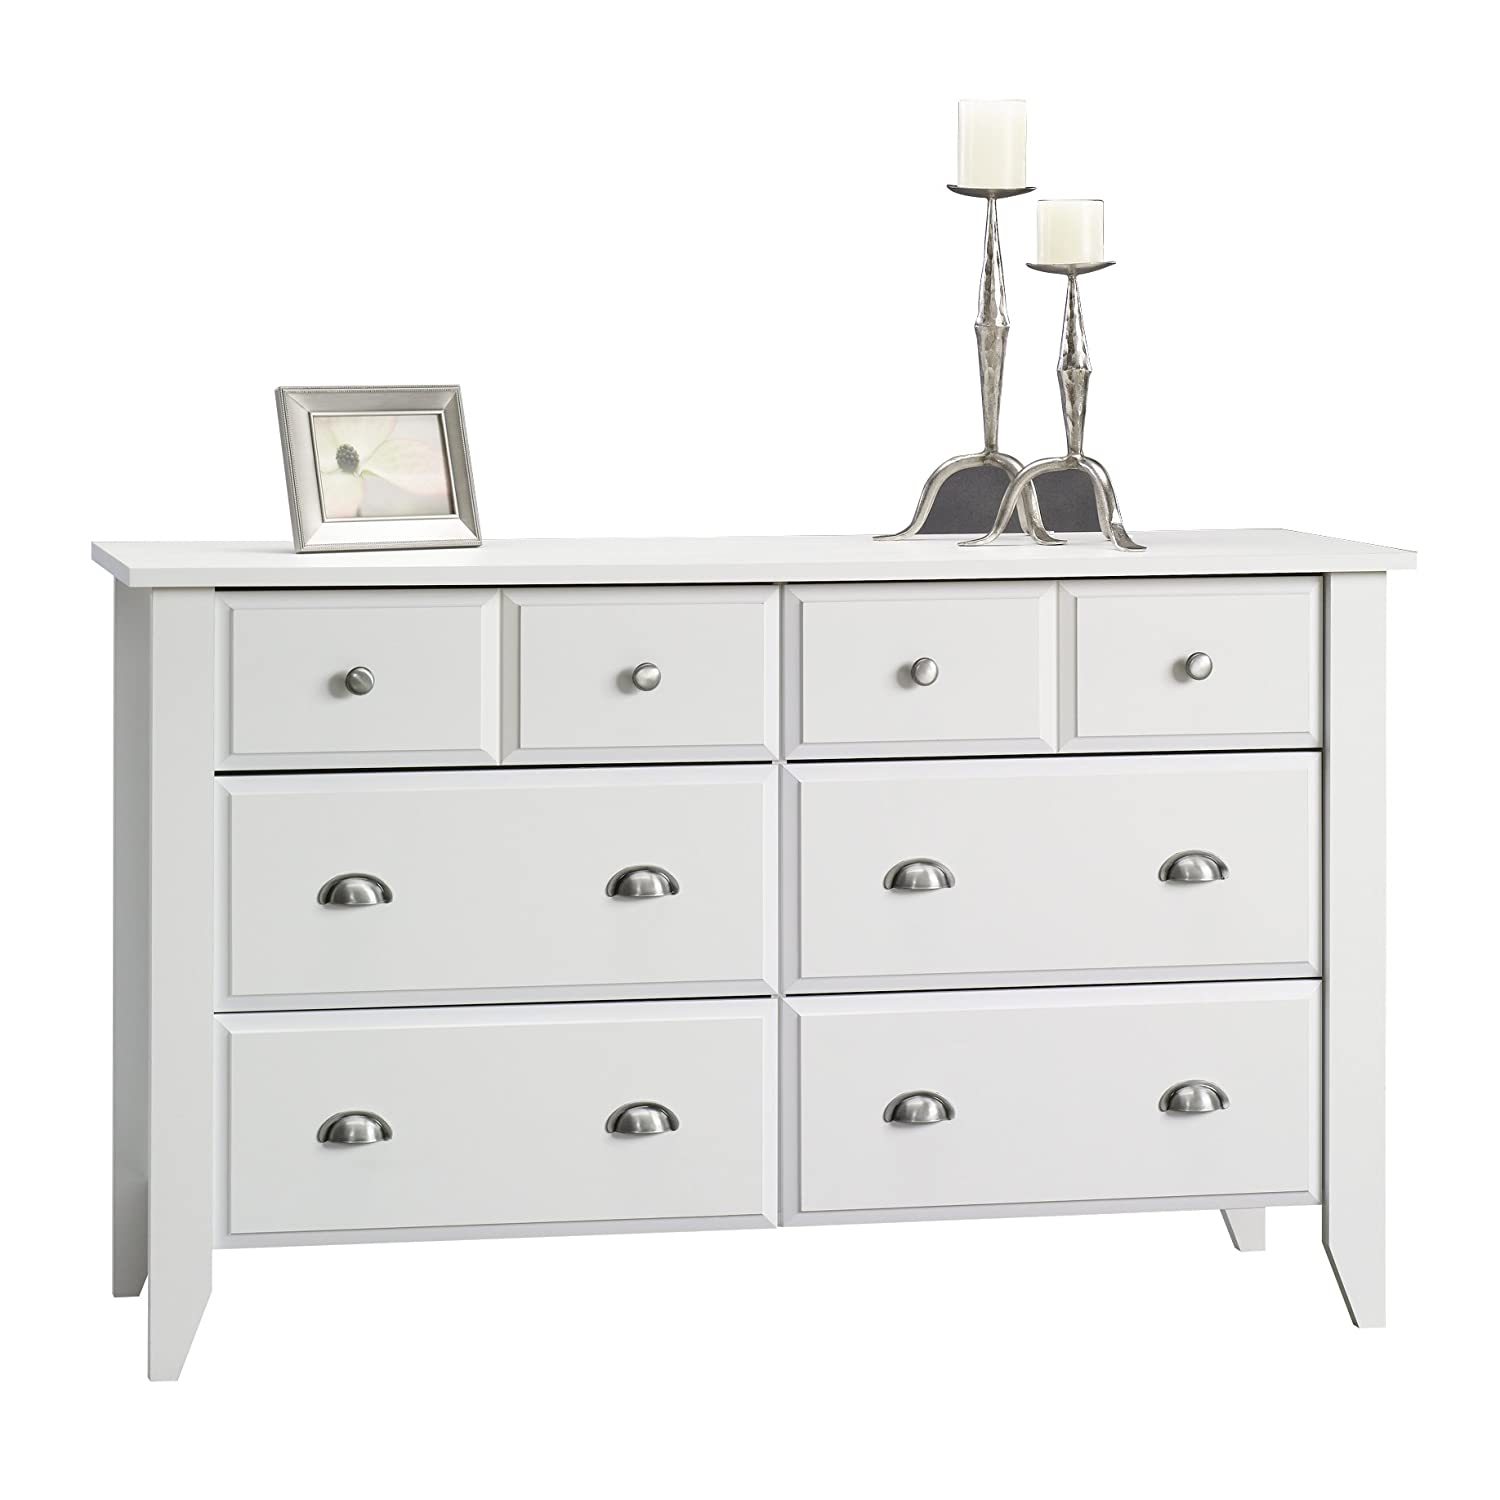 Marvelous Amazon.com: Sauder Shoal Creek Dresser, Soft White Finish: Kitchen U0026 Dining